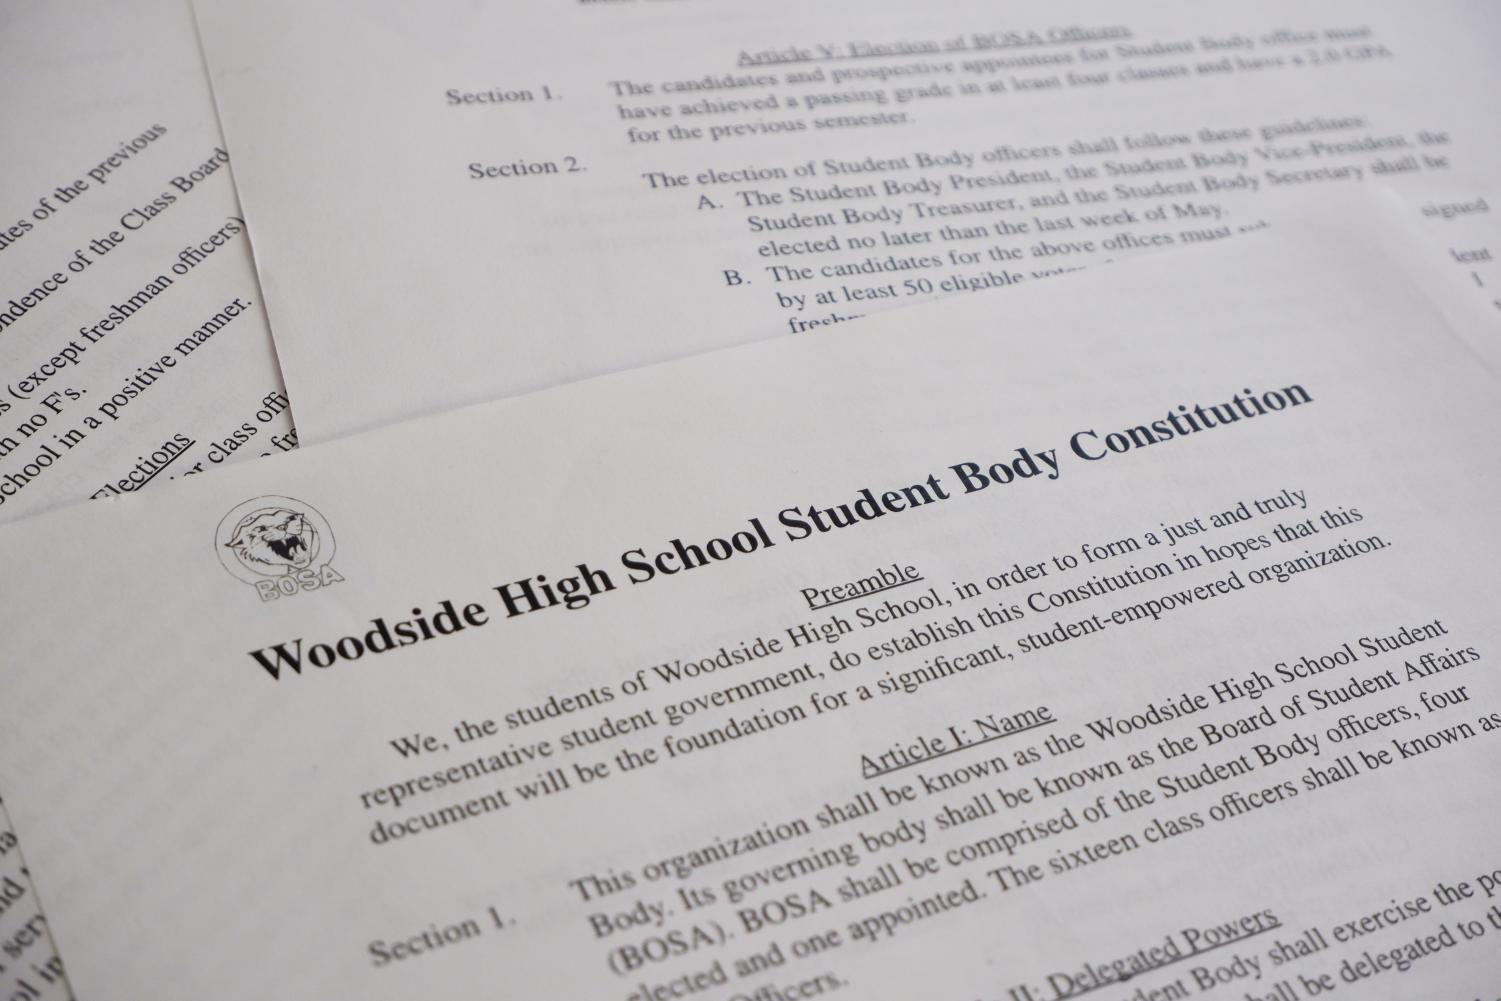 Similar to the United States Constitution, Woodside's Student Body Constitution begins with a preamble and is divided into articles.